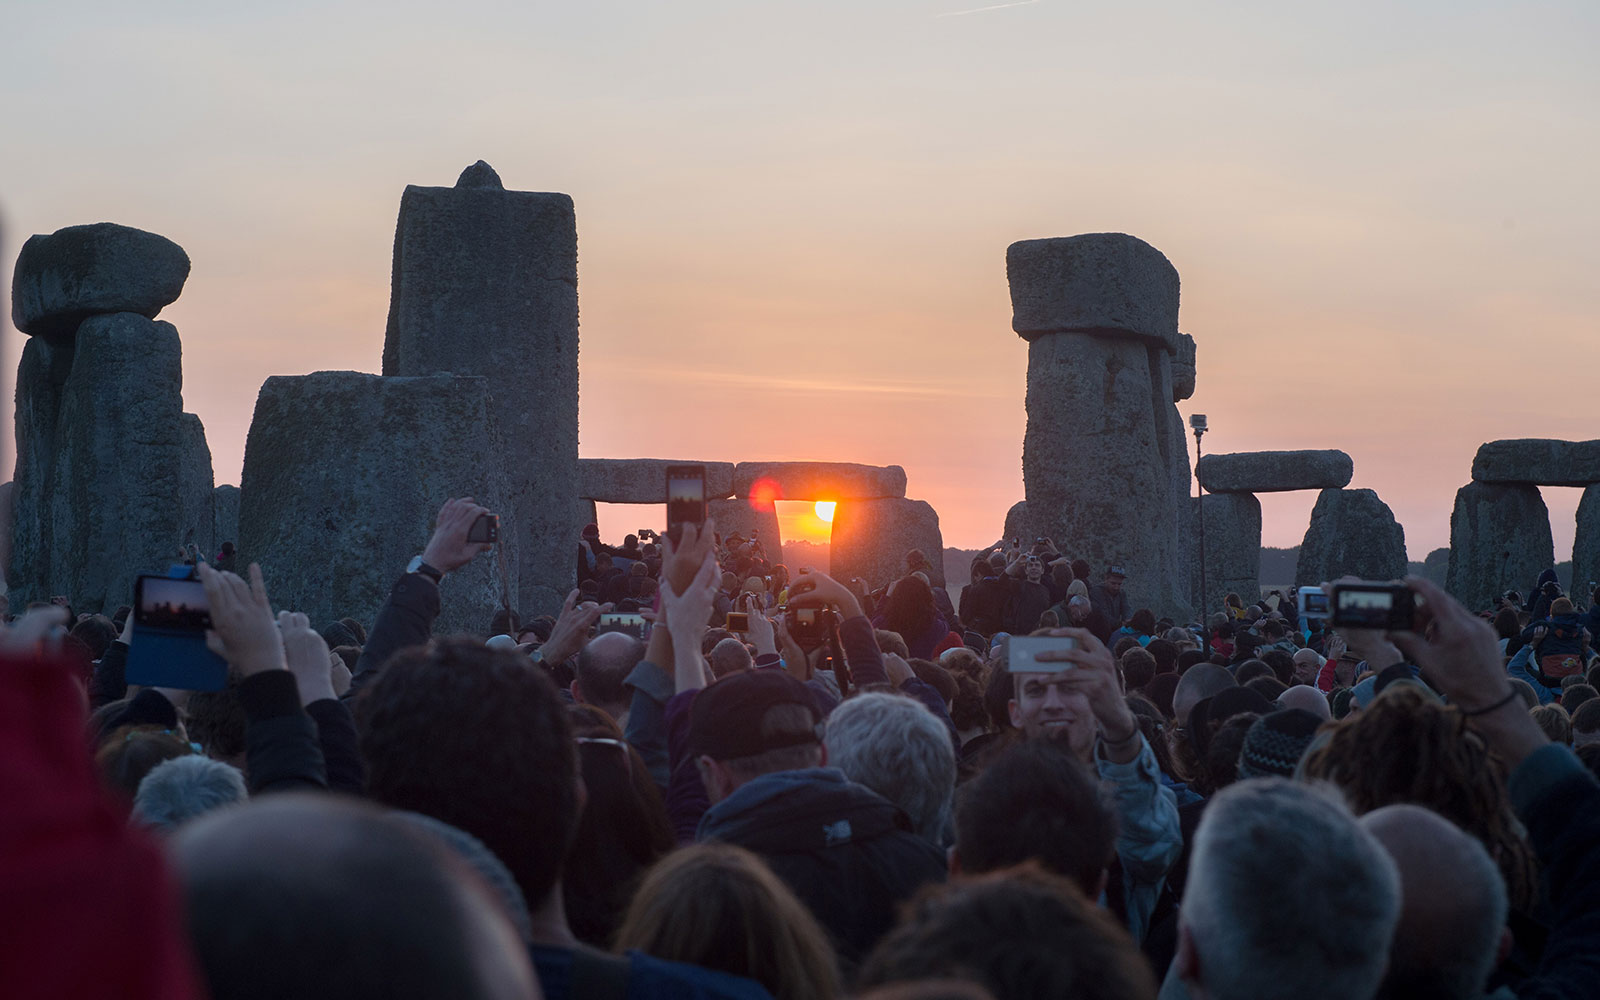 WILTSHIRE, ENGLAND - JUNE 21:  People take part in the summer solstice dawn celebrations after druids, pagans and revellers gathered for the Summer Solstice sunrise at Stonehenge on June 21, 2014 in Wiltshire, England. A sunny forecast brought thousands of revellers to the 5,000 year old stone circle in Wiltshire to see the sunrise on the Summer Solstice dawn. The solstice sunrise marks the longest day of the year in the Northern Hemisphere.  (Photo by Tim Ireland/Getty Images)